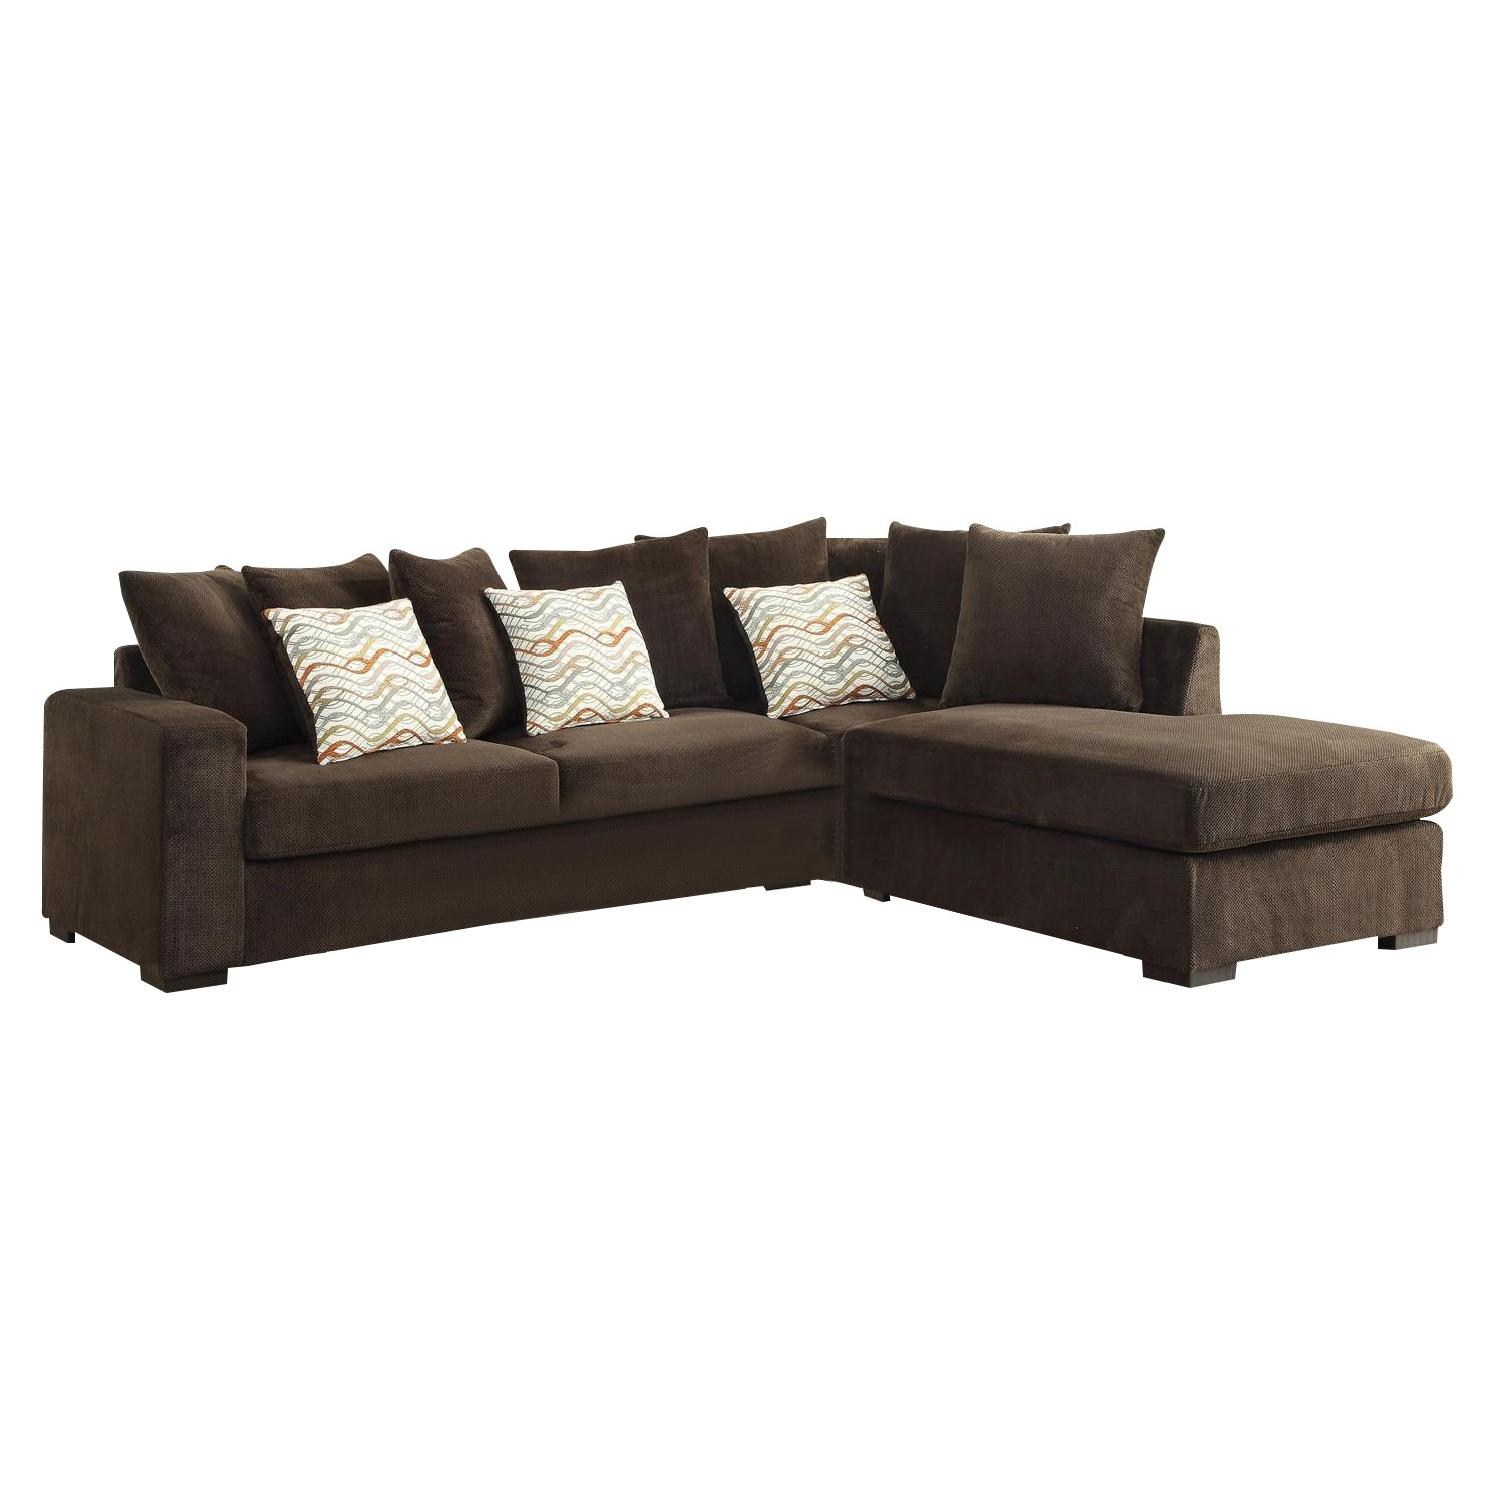 Fabulous Reversible Sectional In Chocolate Textured Chenille Fabric Pdpeps Interior Chair Design Pdpepsorg